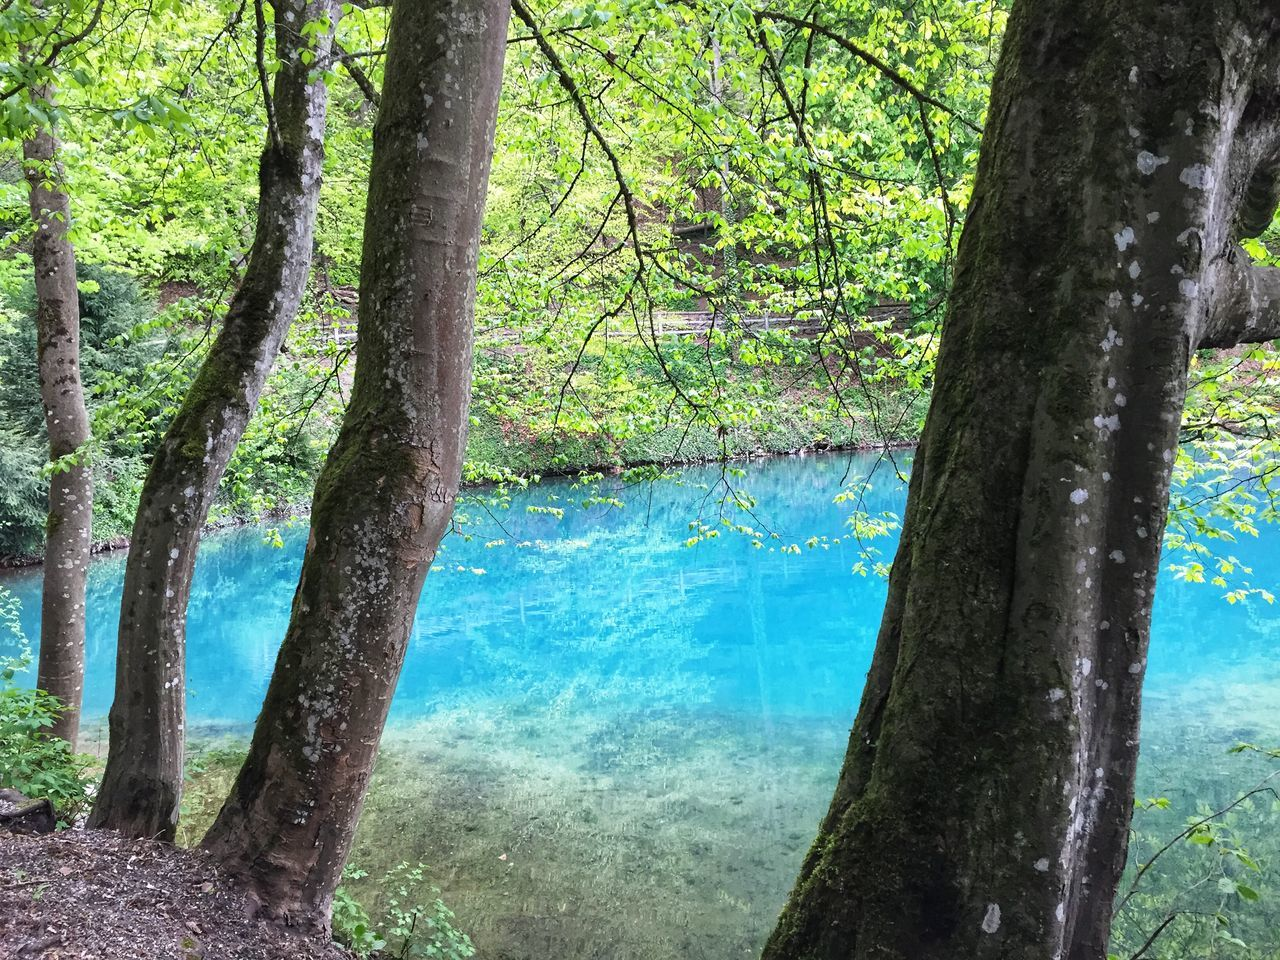 tree, plant, trunk, tree trunk, nature, water, forest, land, beauty in nature, no people, growth, tranquility, day, scenics - nature, tranquil scene, outdoors, blue, branch, lake, turquoise colored